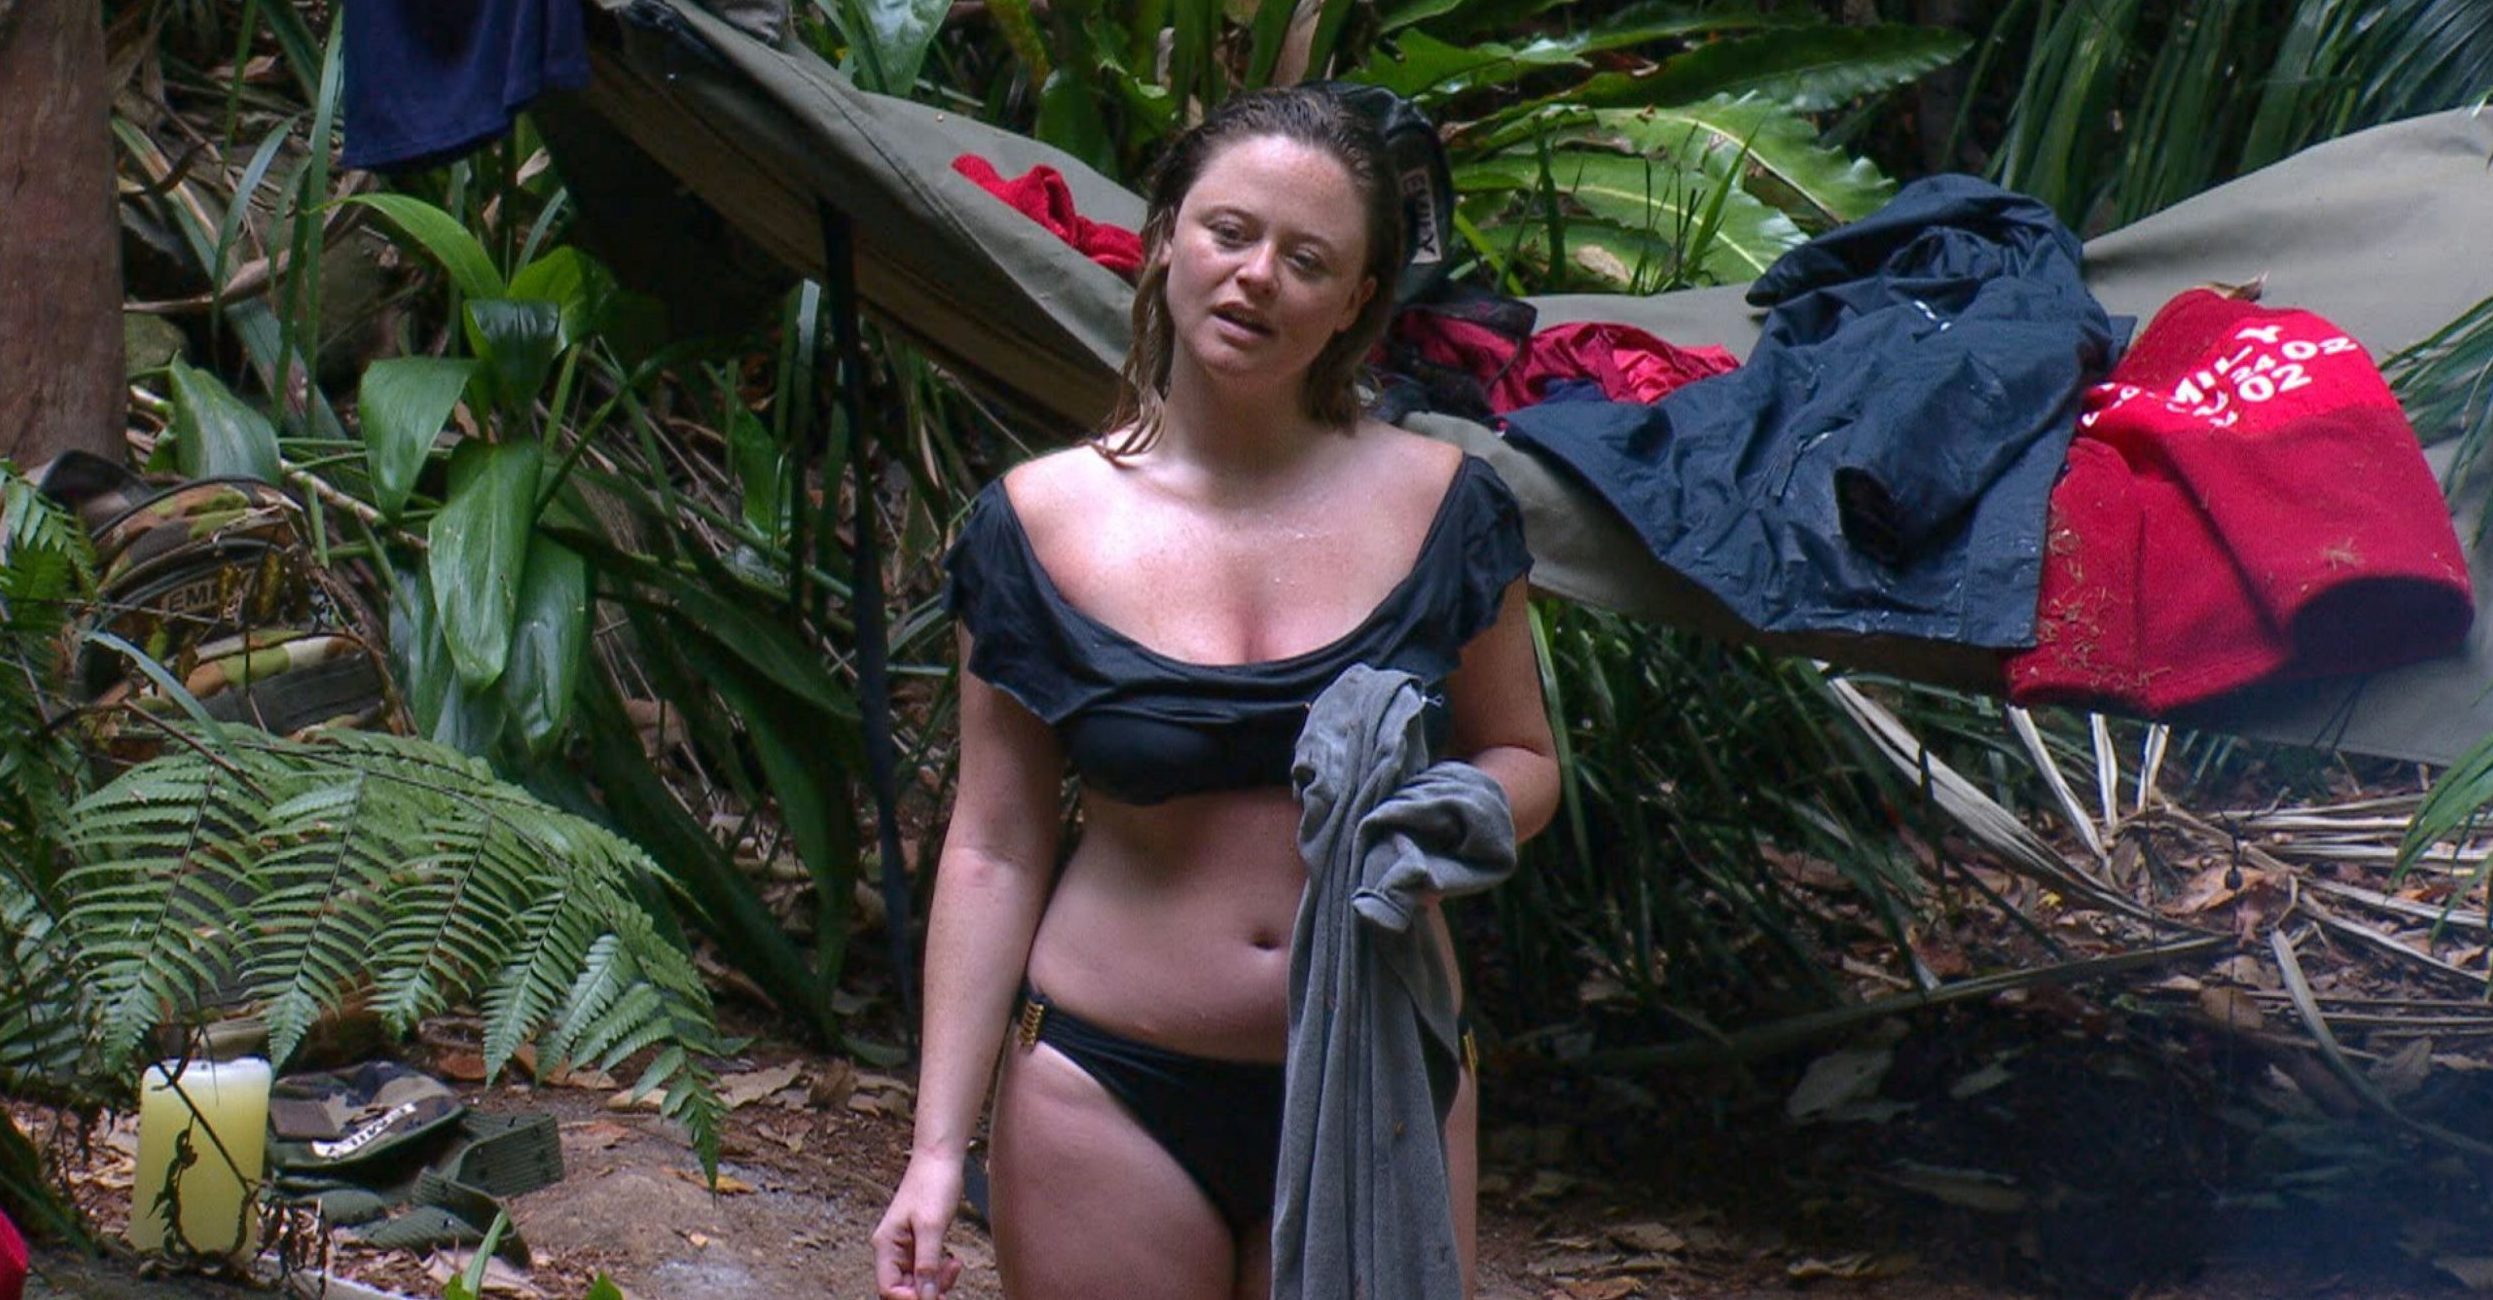 STRICT EMBARGO - NOT TO BE USED BEFORE 22:00 GMT, 28 NOV 2018 - EDITORIAL USE ONLY Mandatory Credit: Photo by ITV/REX (10001287fl) Nick Gets Knickered - Emily Atack 'I'm a Celebrity... Get Me Out of Here!' TV Show, Series 18, Australia - 28 Nov 2018